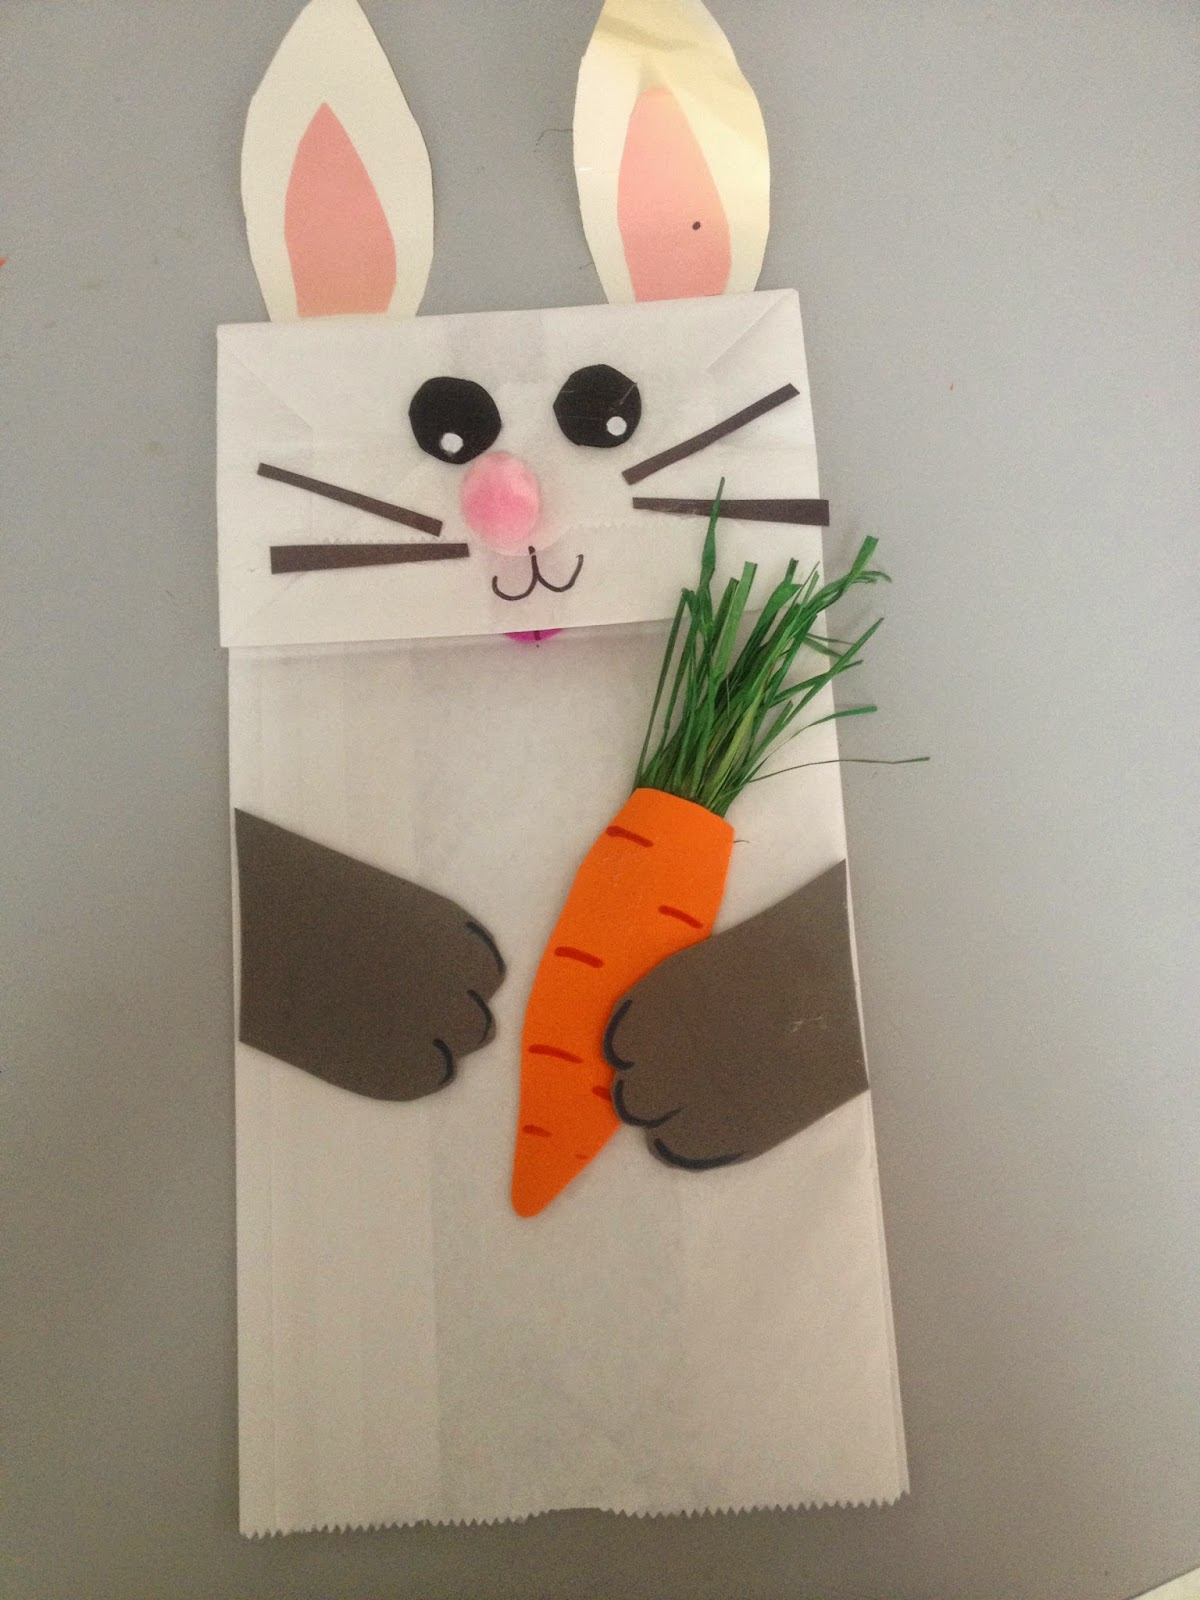 Mc School Art Easter Bunny Puppets